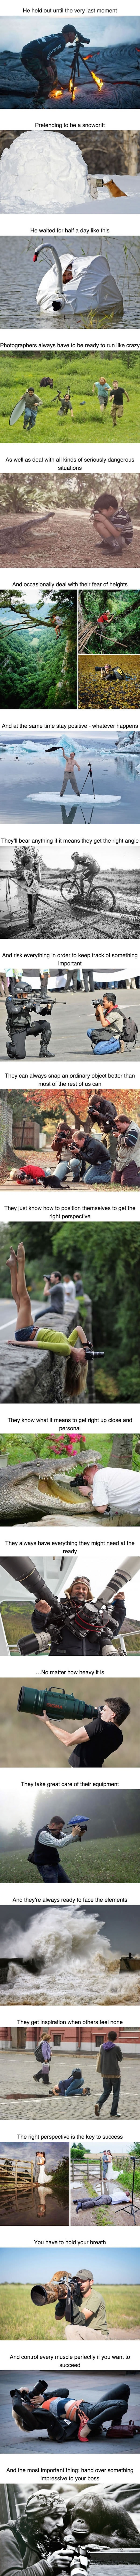 Anything for a perfect shot